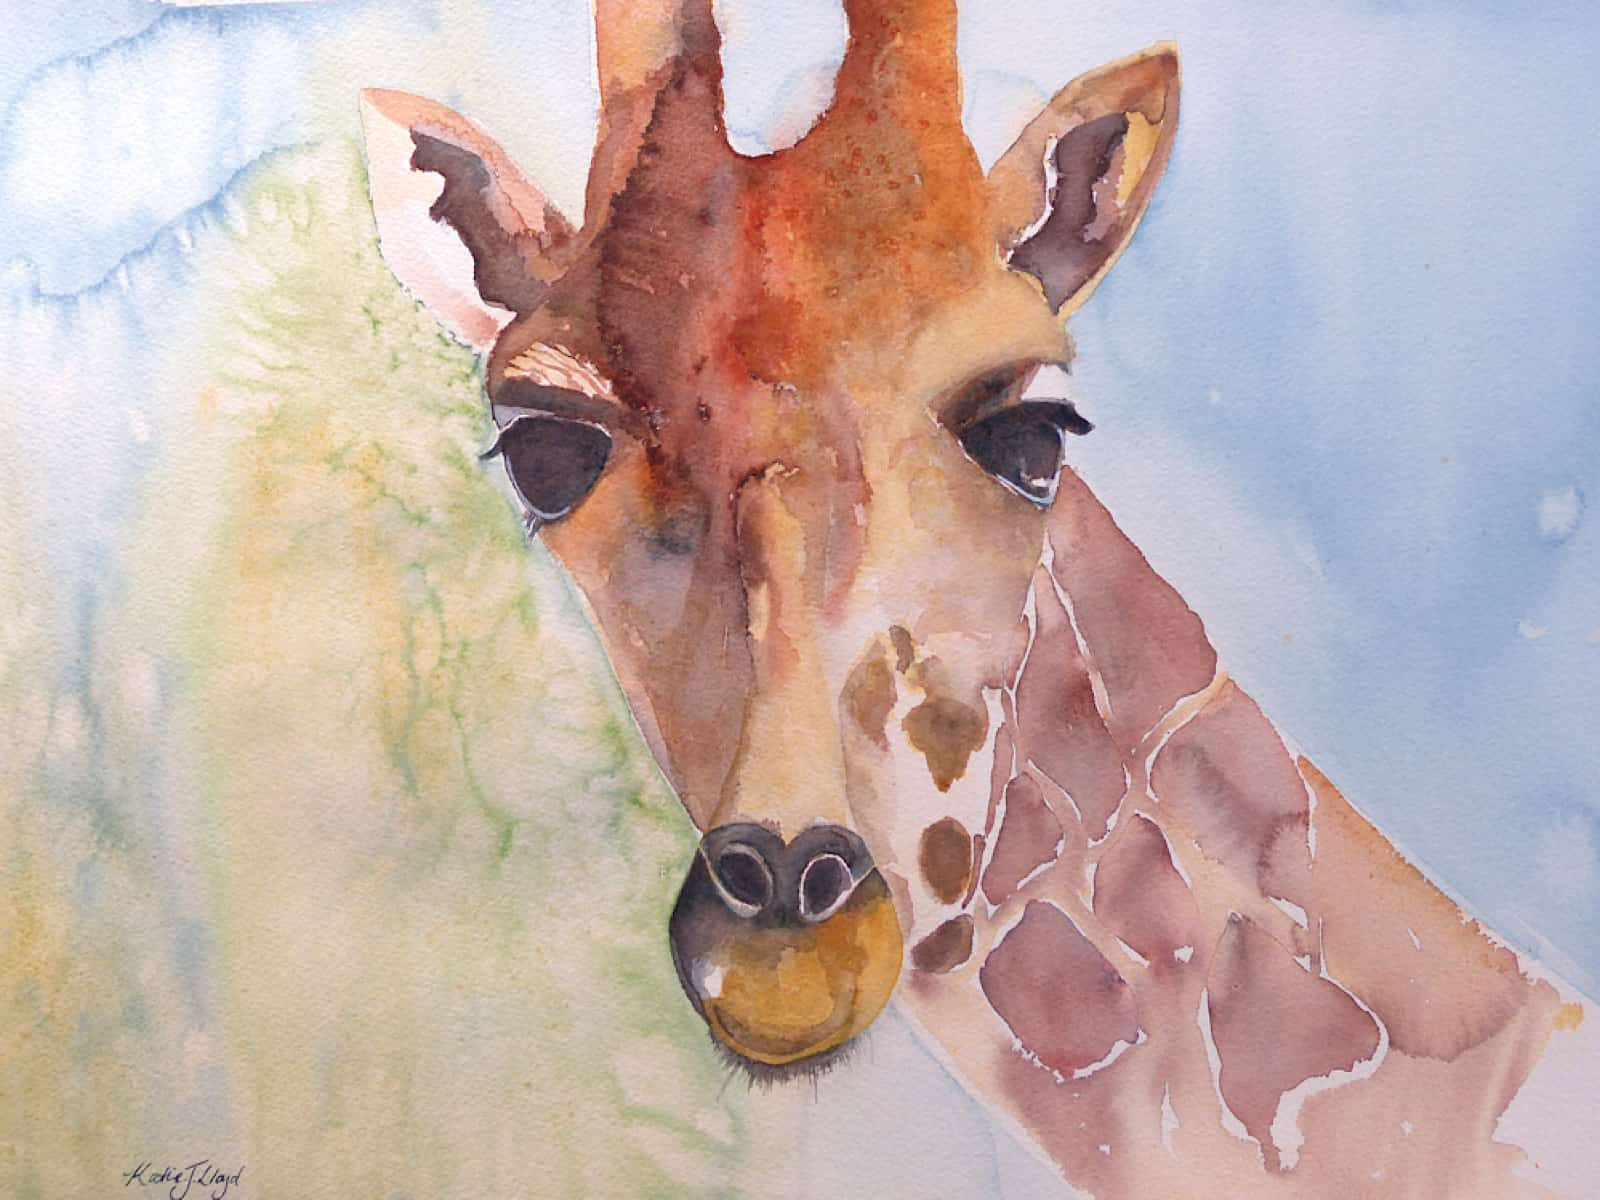 Watercolour giraffe painting with a blue and green background by Katie Lloyd